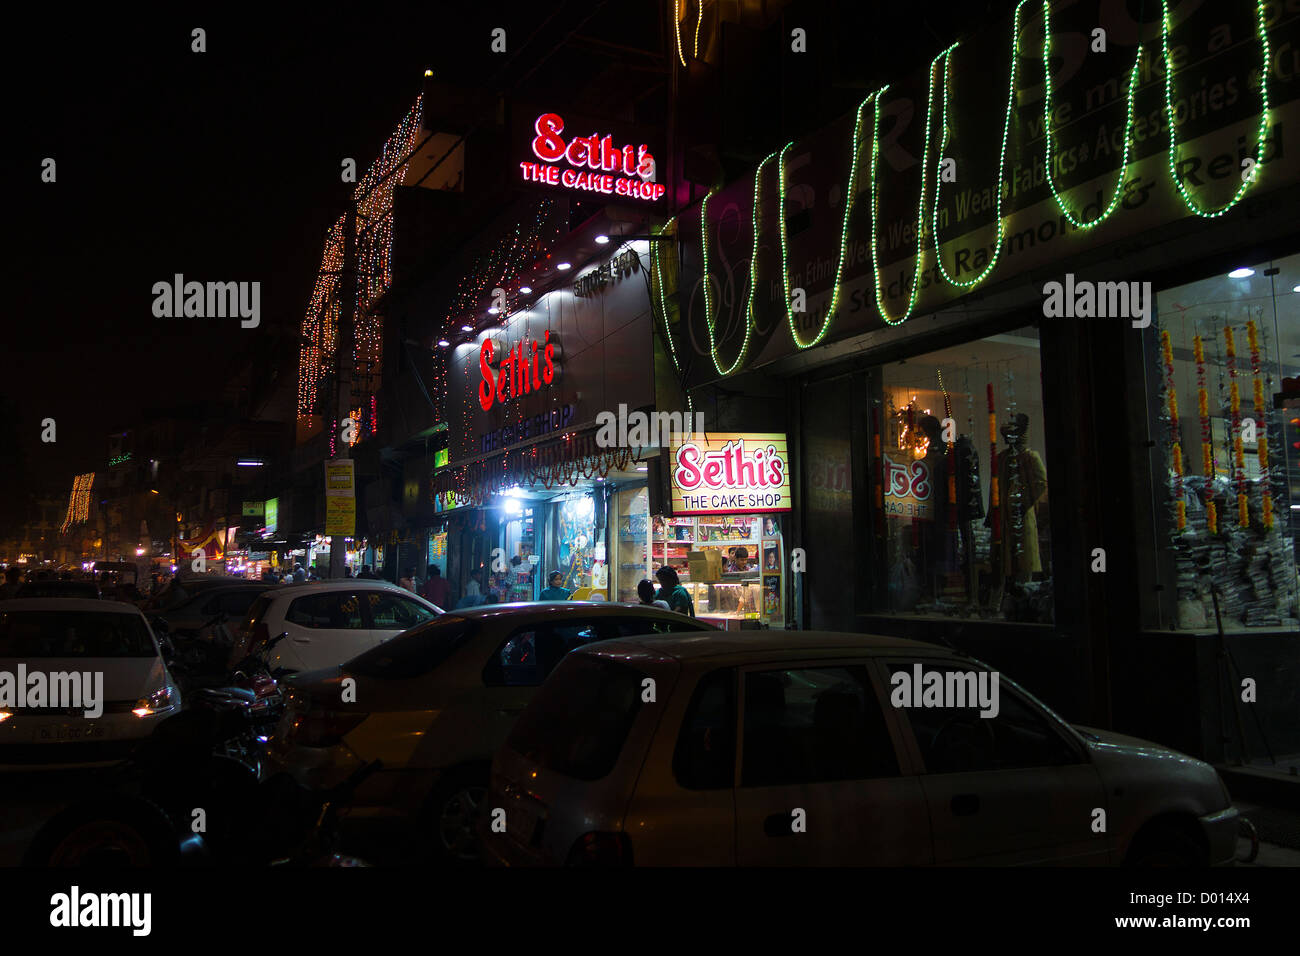 Kamla Nagar Market Old Delhi Business Commercial Hub Center Shops Showrooms Vendors Night Scene - Stock Image